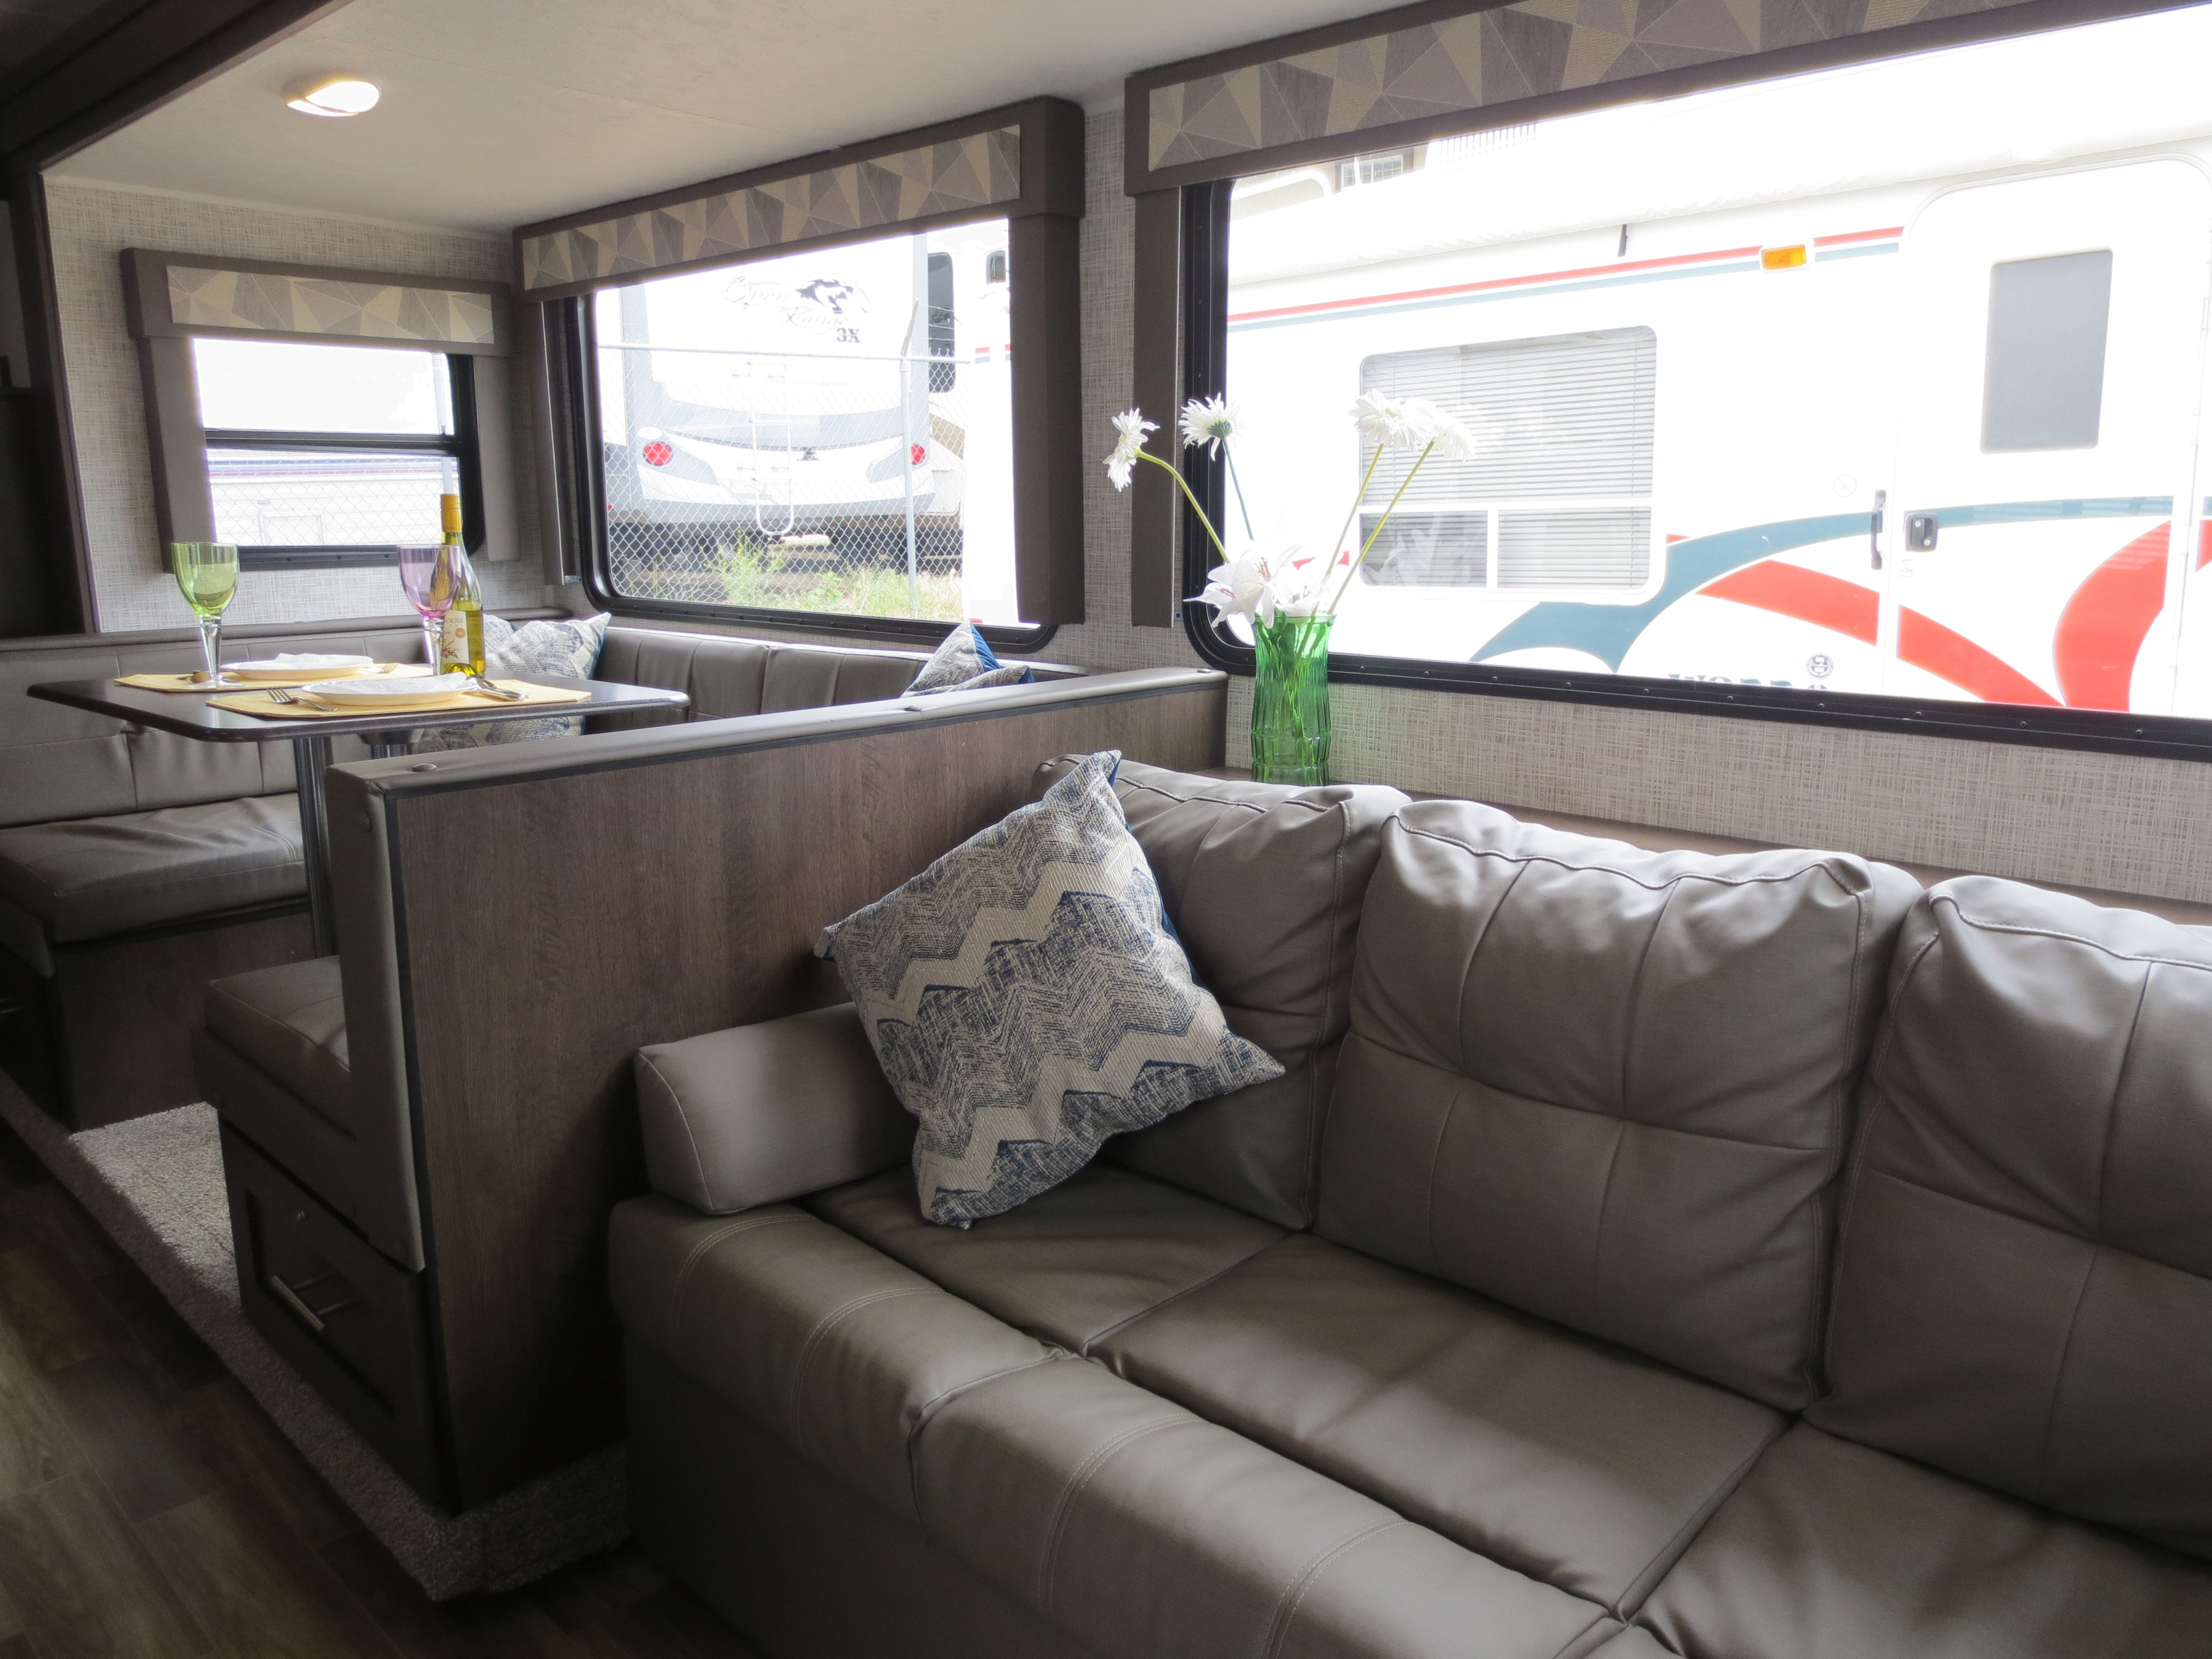 29' Cruise Lite Trailer with Slide-out Kitchen & Dinette View